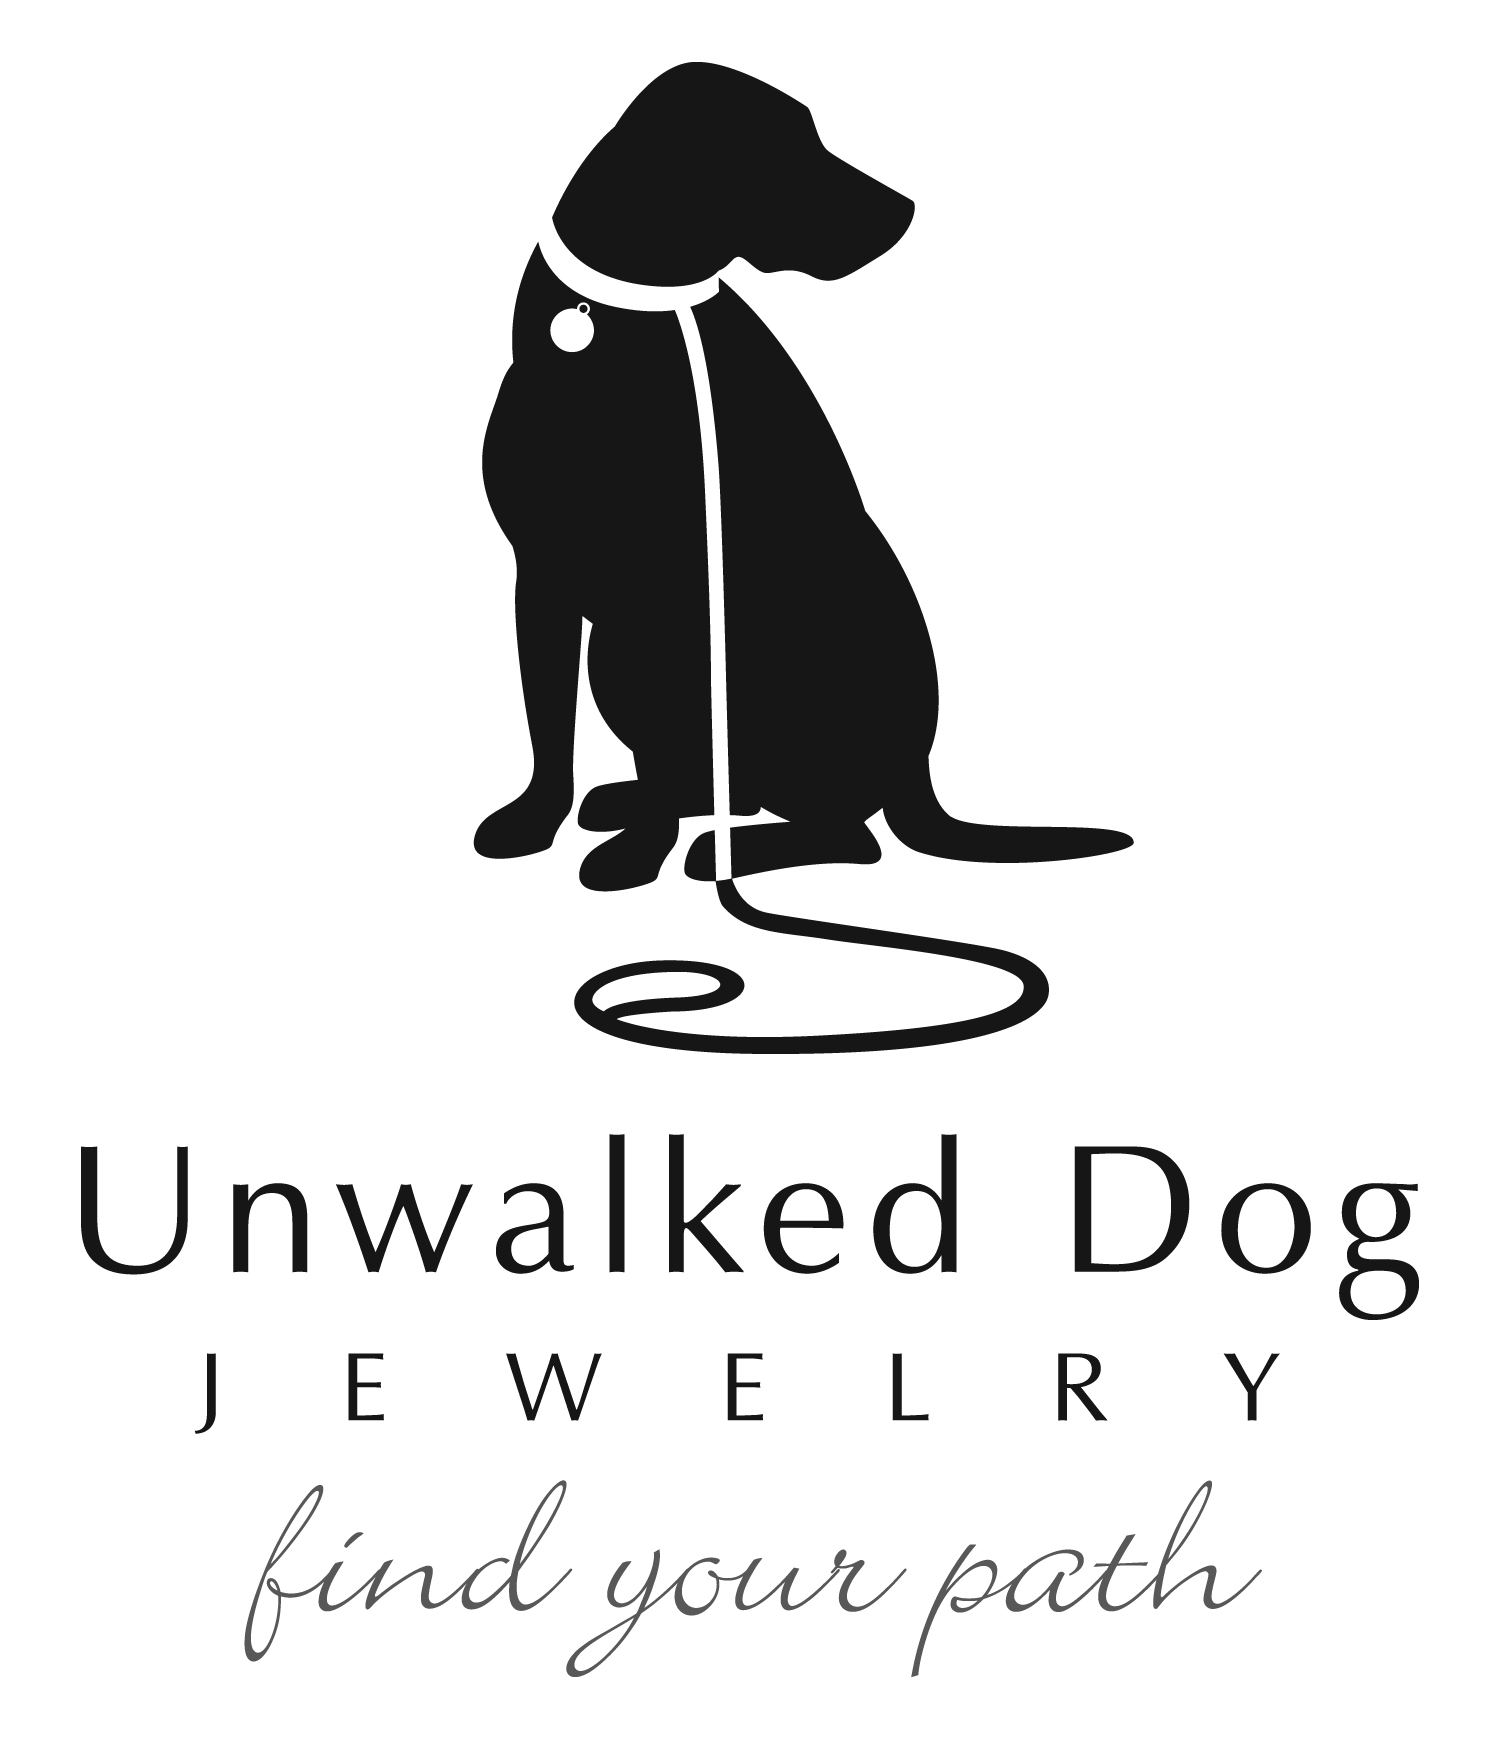 Unwalked Dog Jewelry